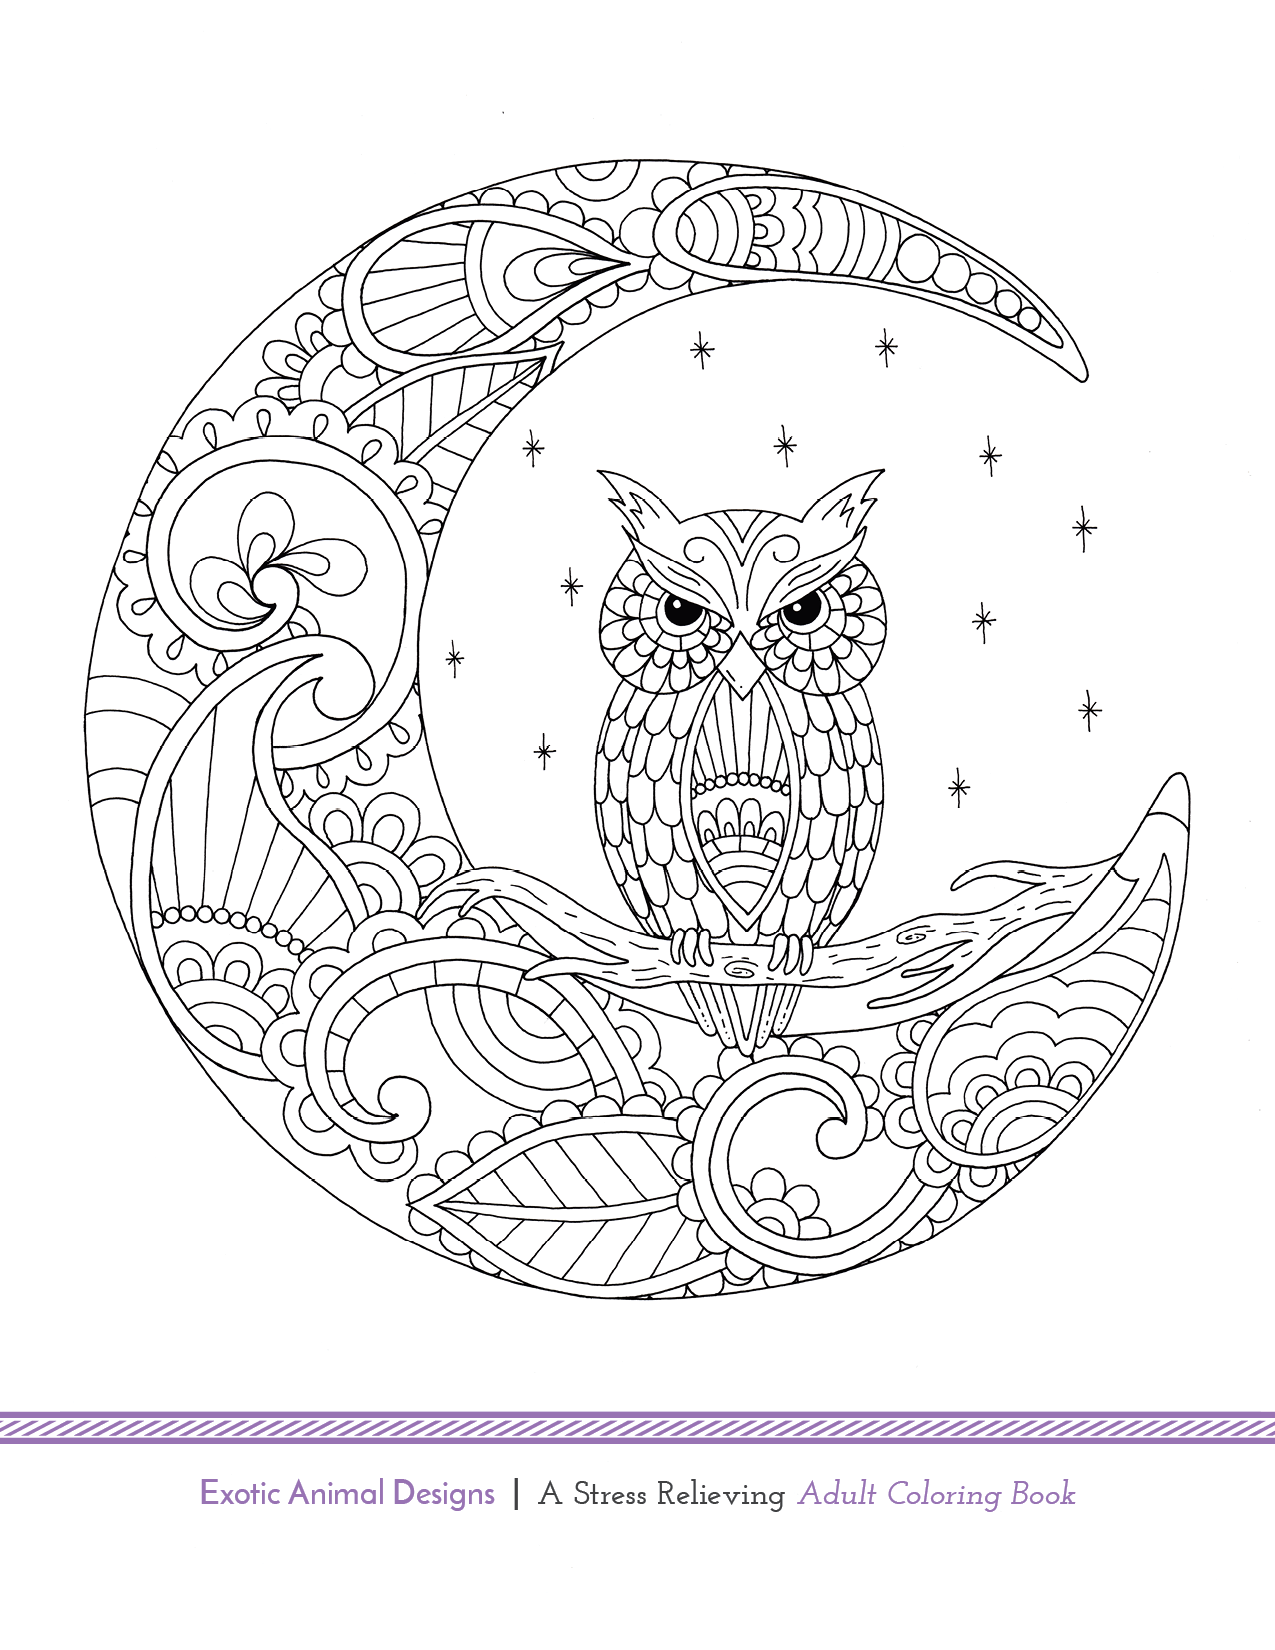 Another free adult coloring book page! Exotic Animal